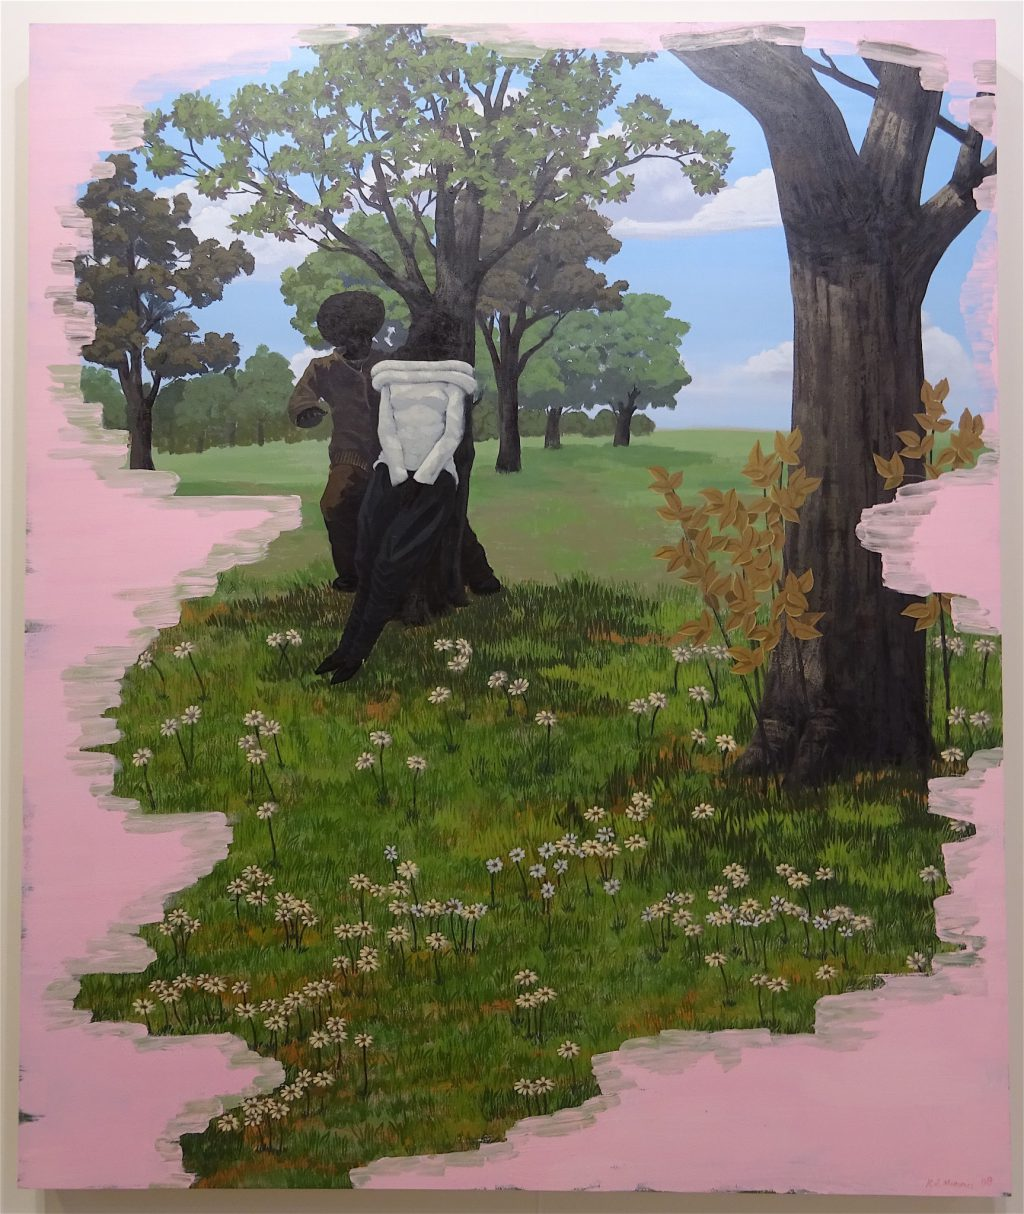 "Kerry James Marshall ""Vignette #12"" 2008, Acrylic on PVC panel, 182.2 x 152.4 cm @ David Zwirner"